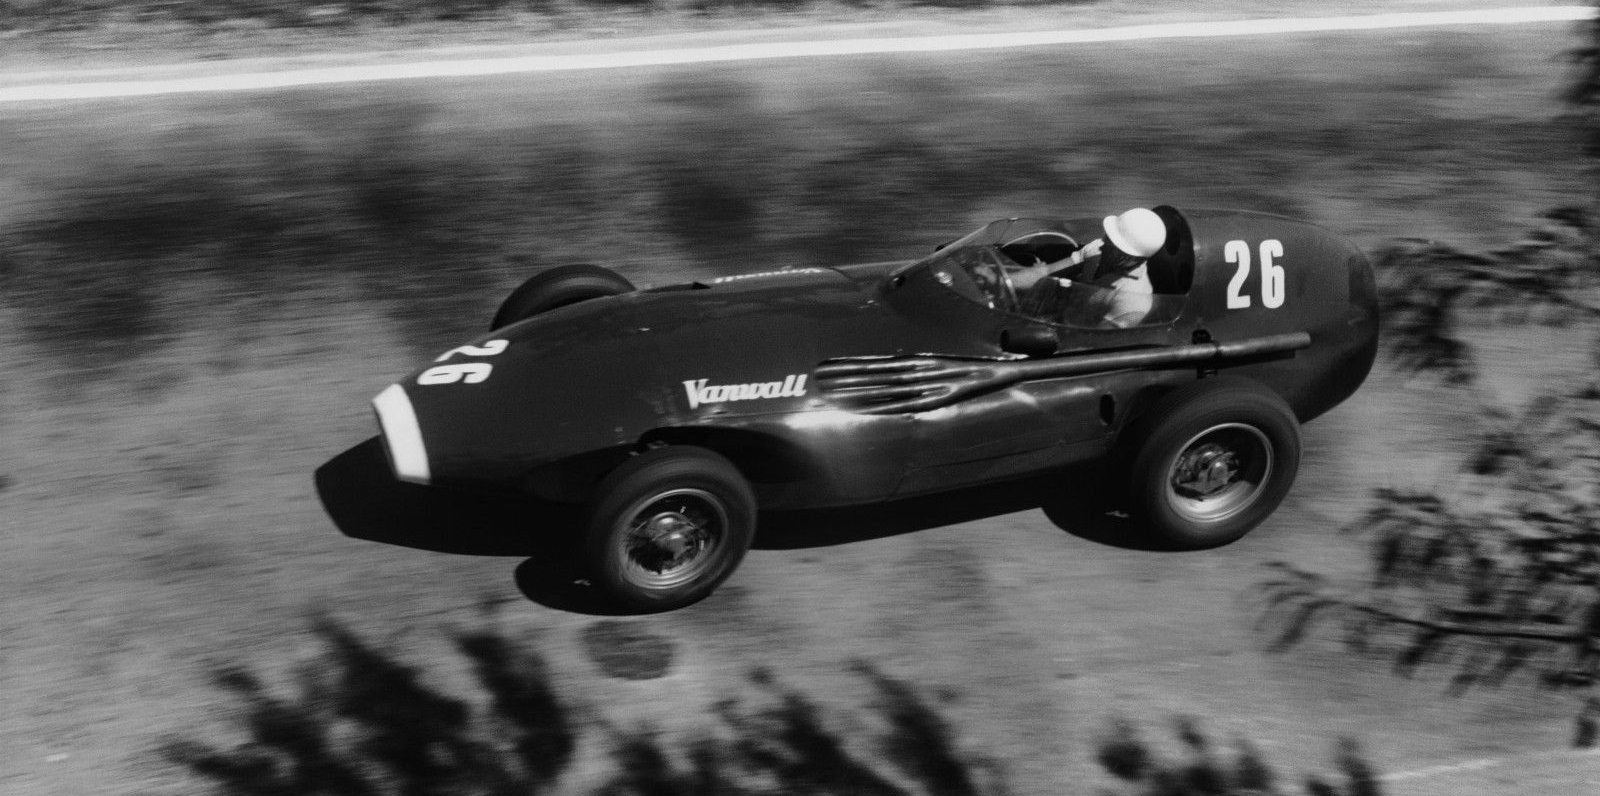 Stirling Moss Vanwall Pescara 1957 F1